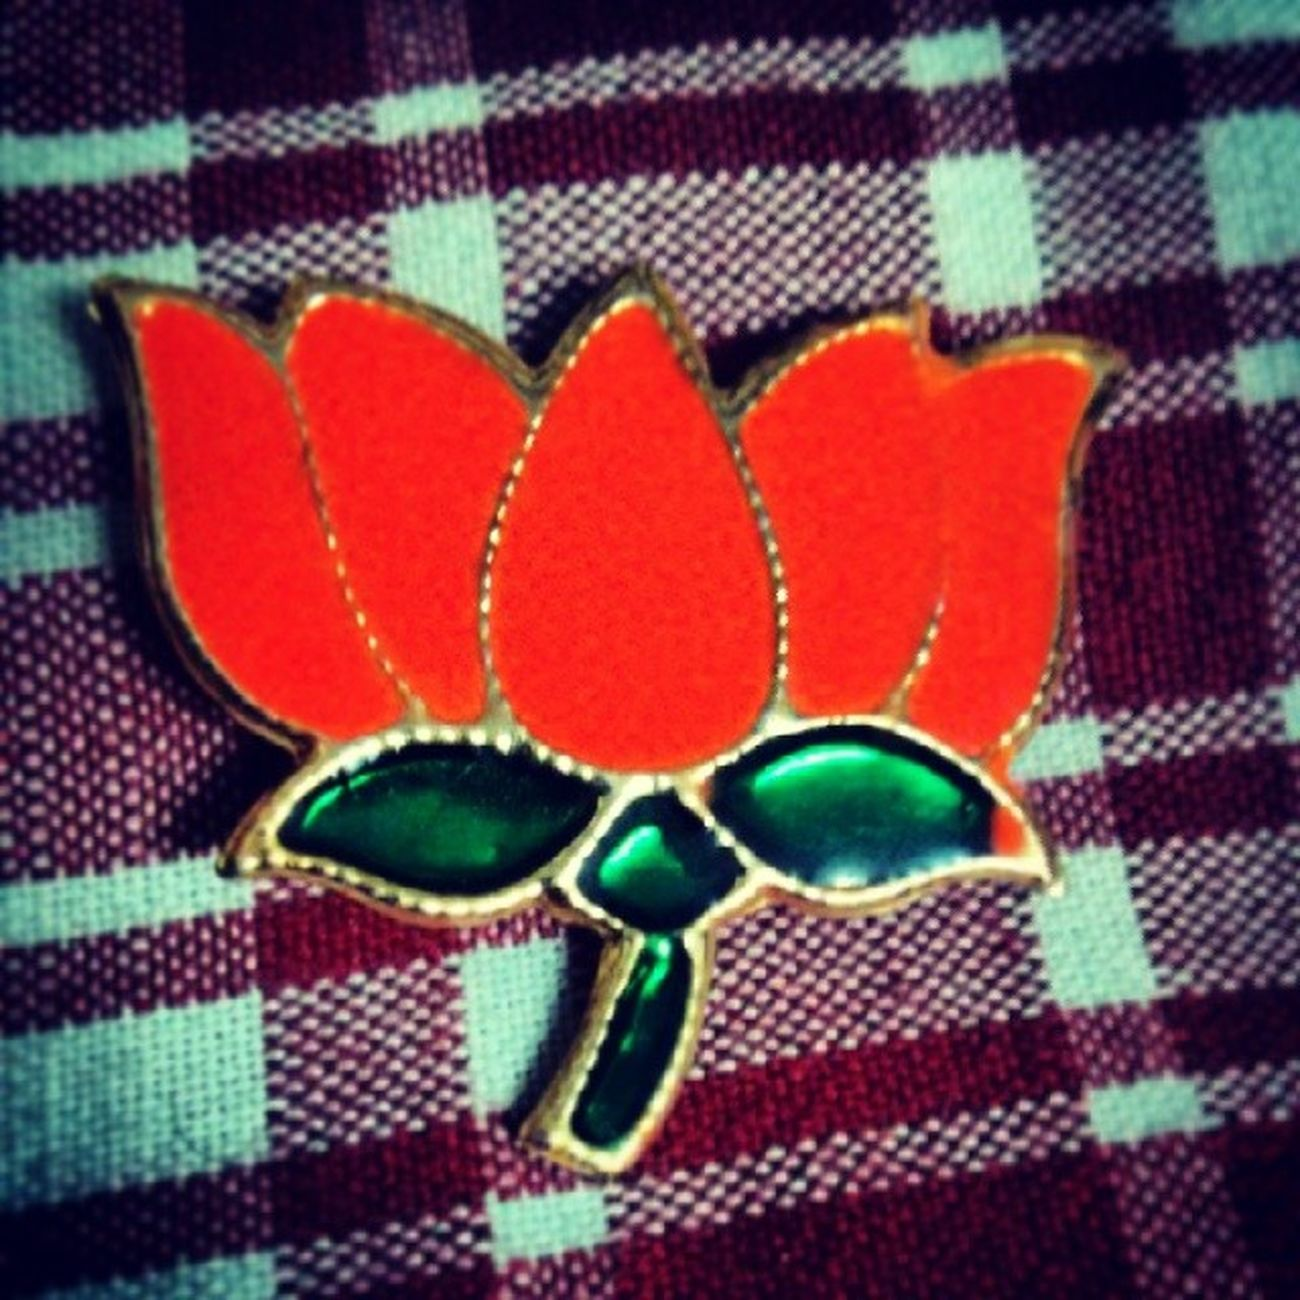 And the political games begin... BJP Symbol Political Parties election time Chandigarh Instapic